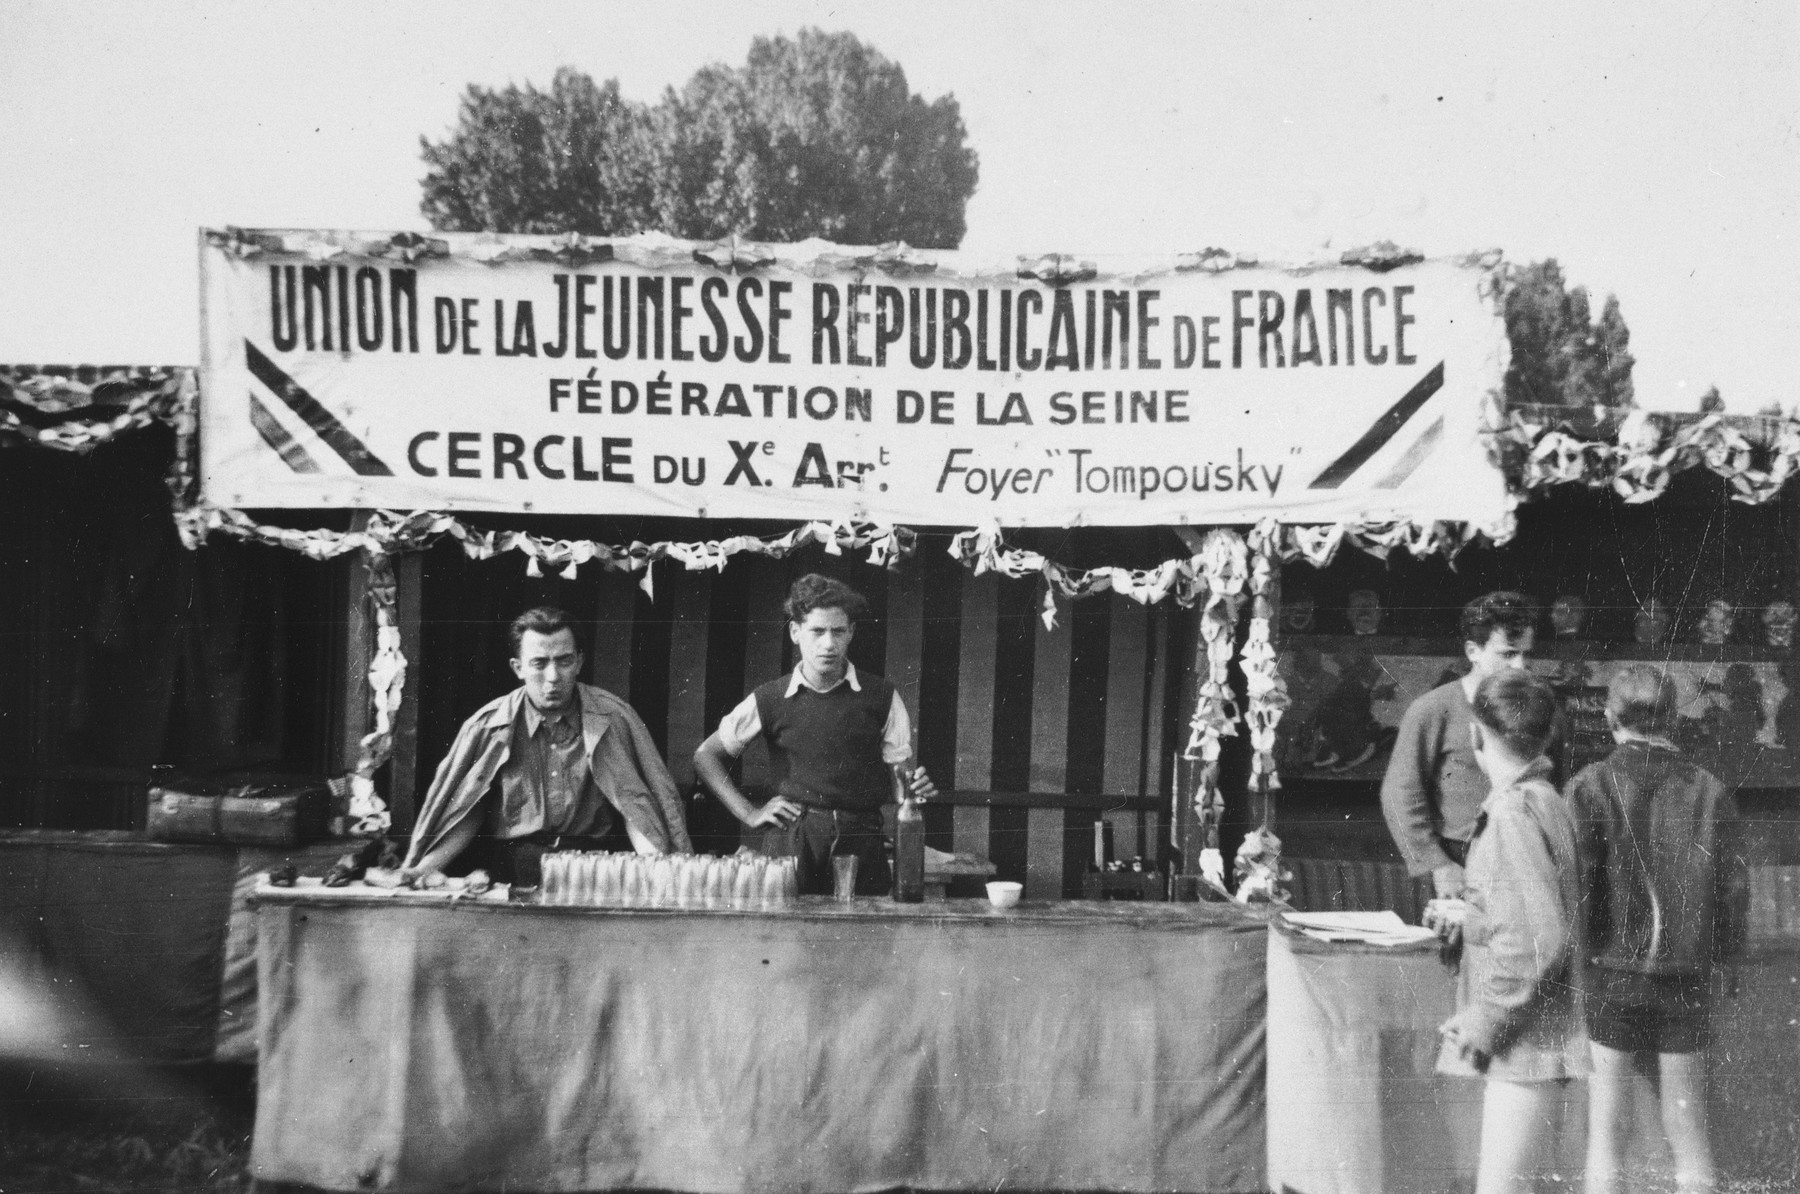 Benno Ginsburg helps man a booth at a gathering of the Union of Young Republicans of France, an umbrella organization of socialist and communist youth movements, including left-wing Zionists.